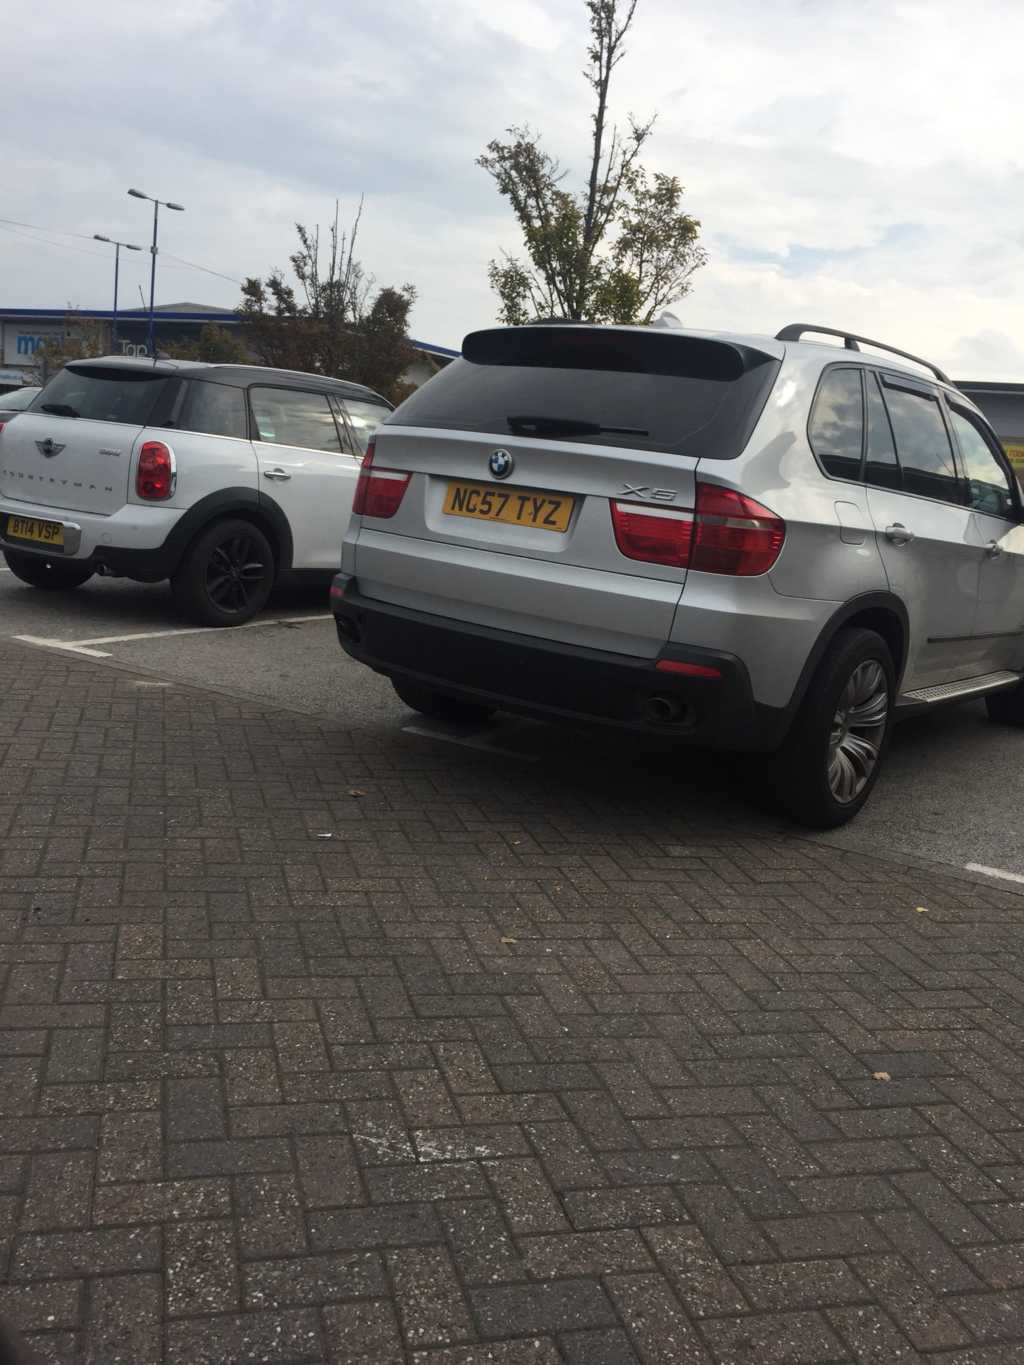 NC57 TYZ displaying crap parking